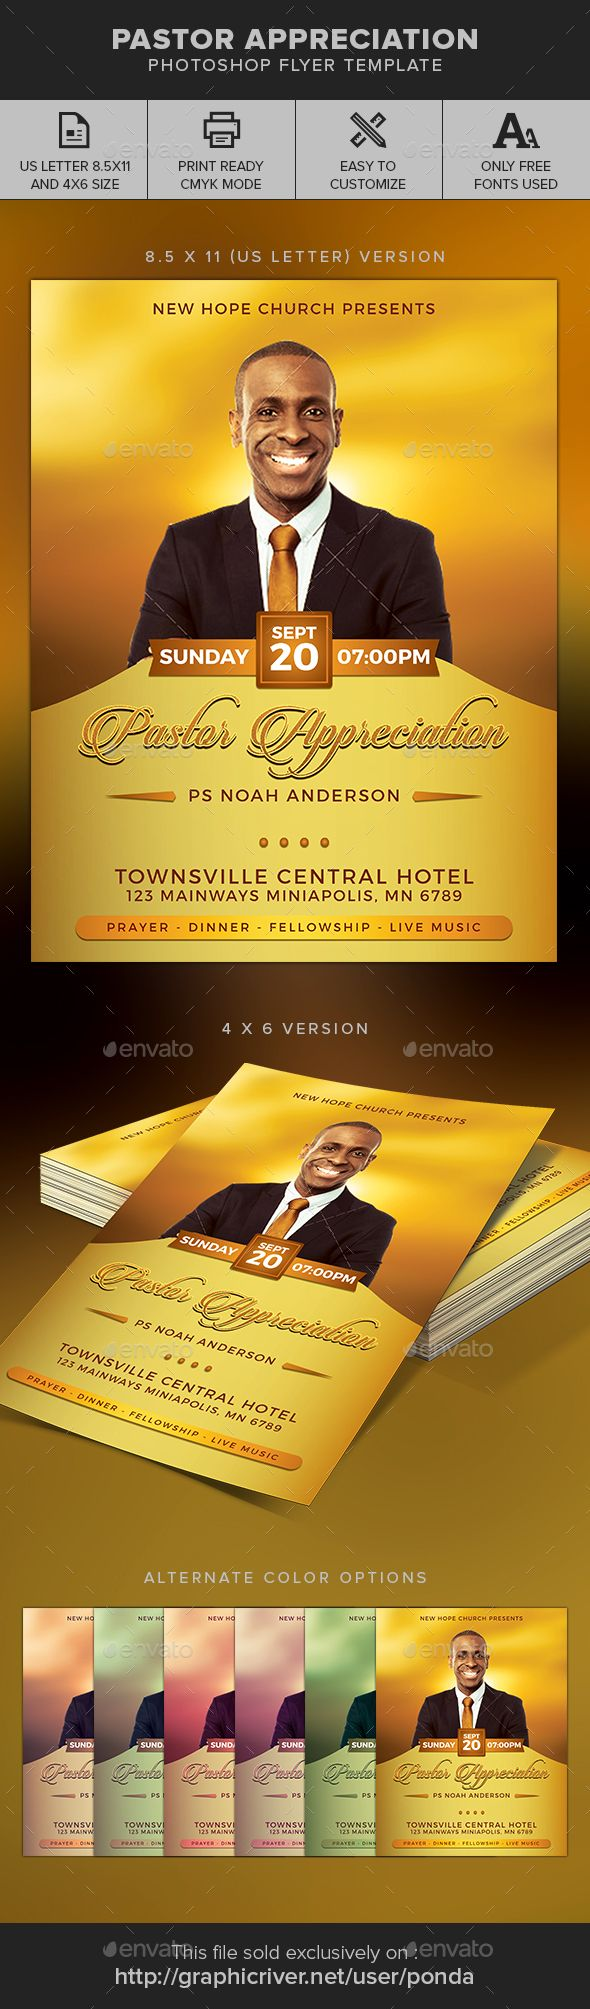 Pastor Appreciation Church Flyer  Pastor Appreciation And Churches